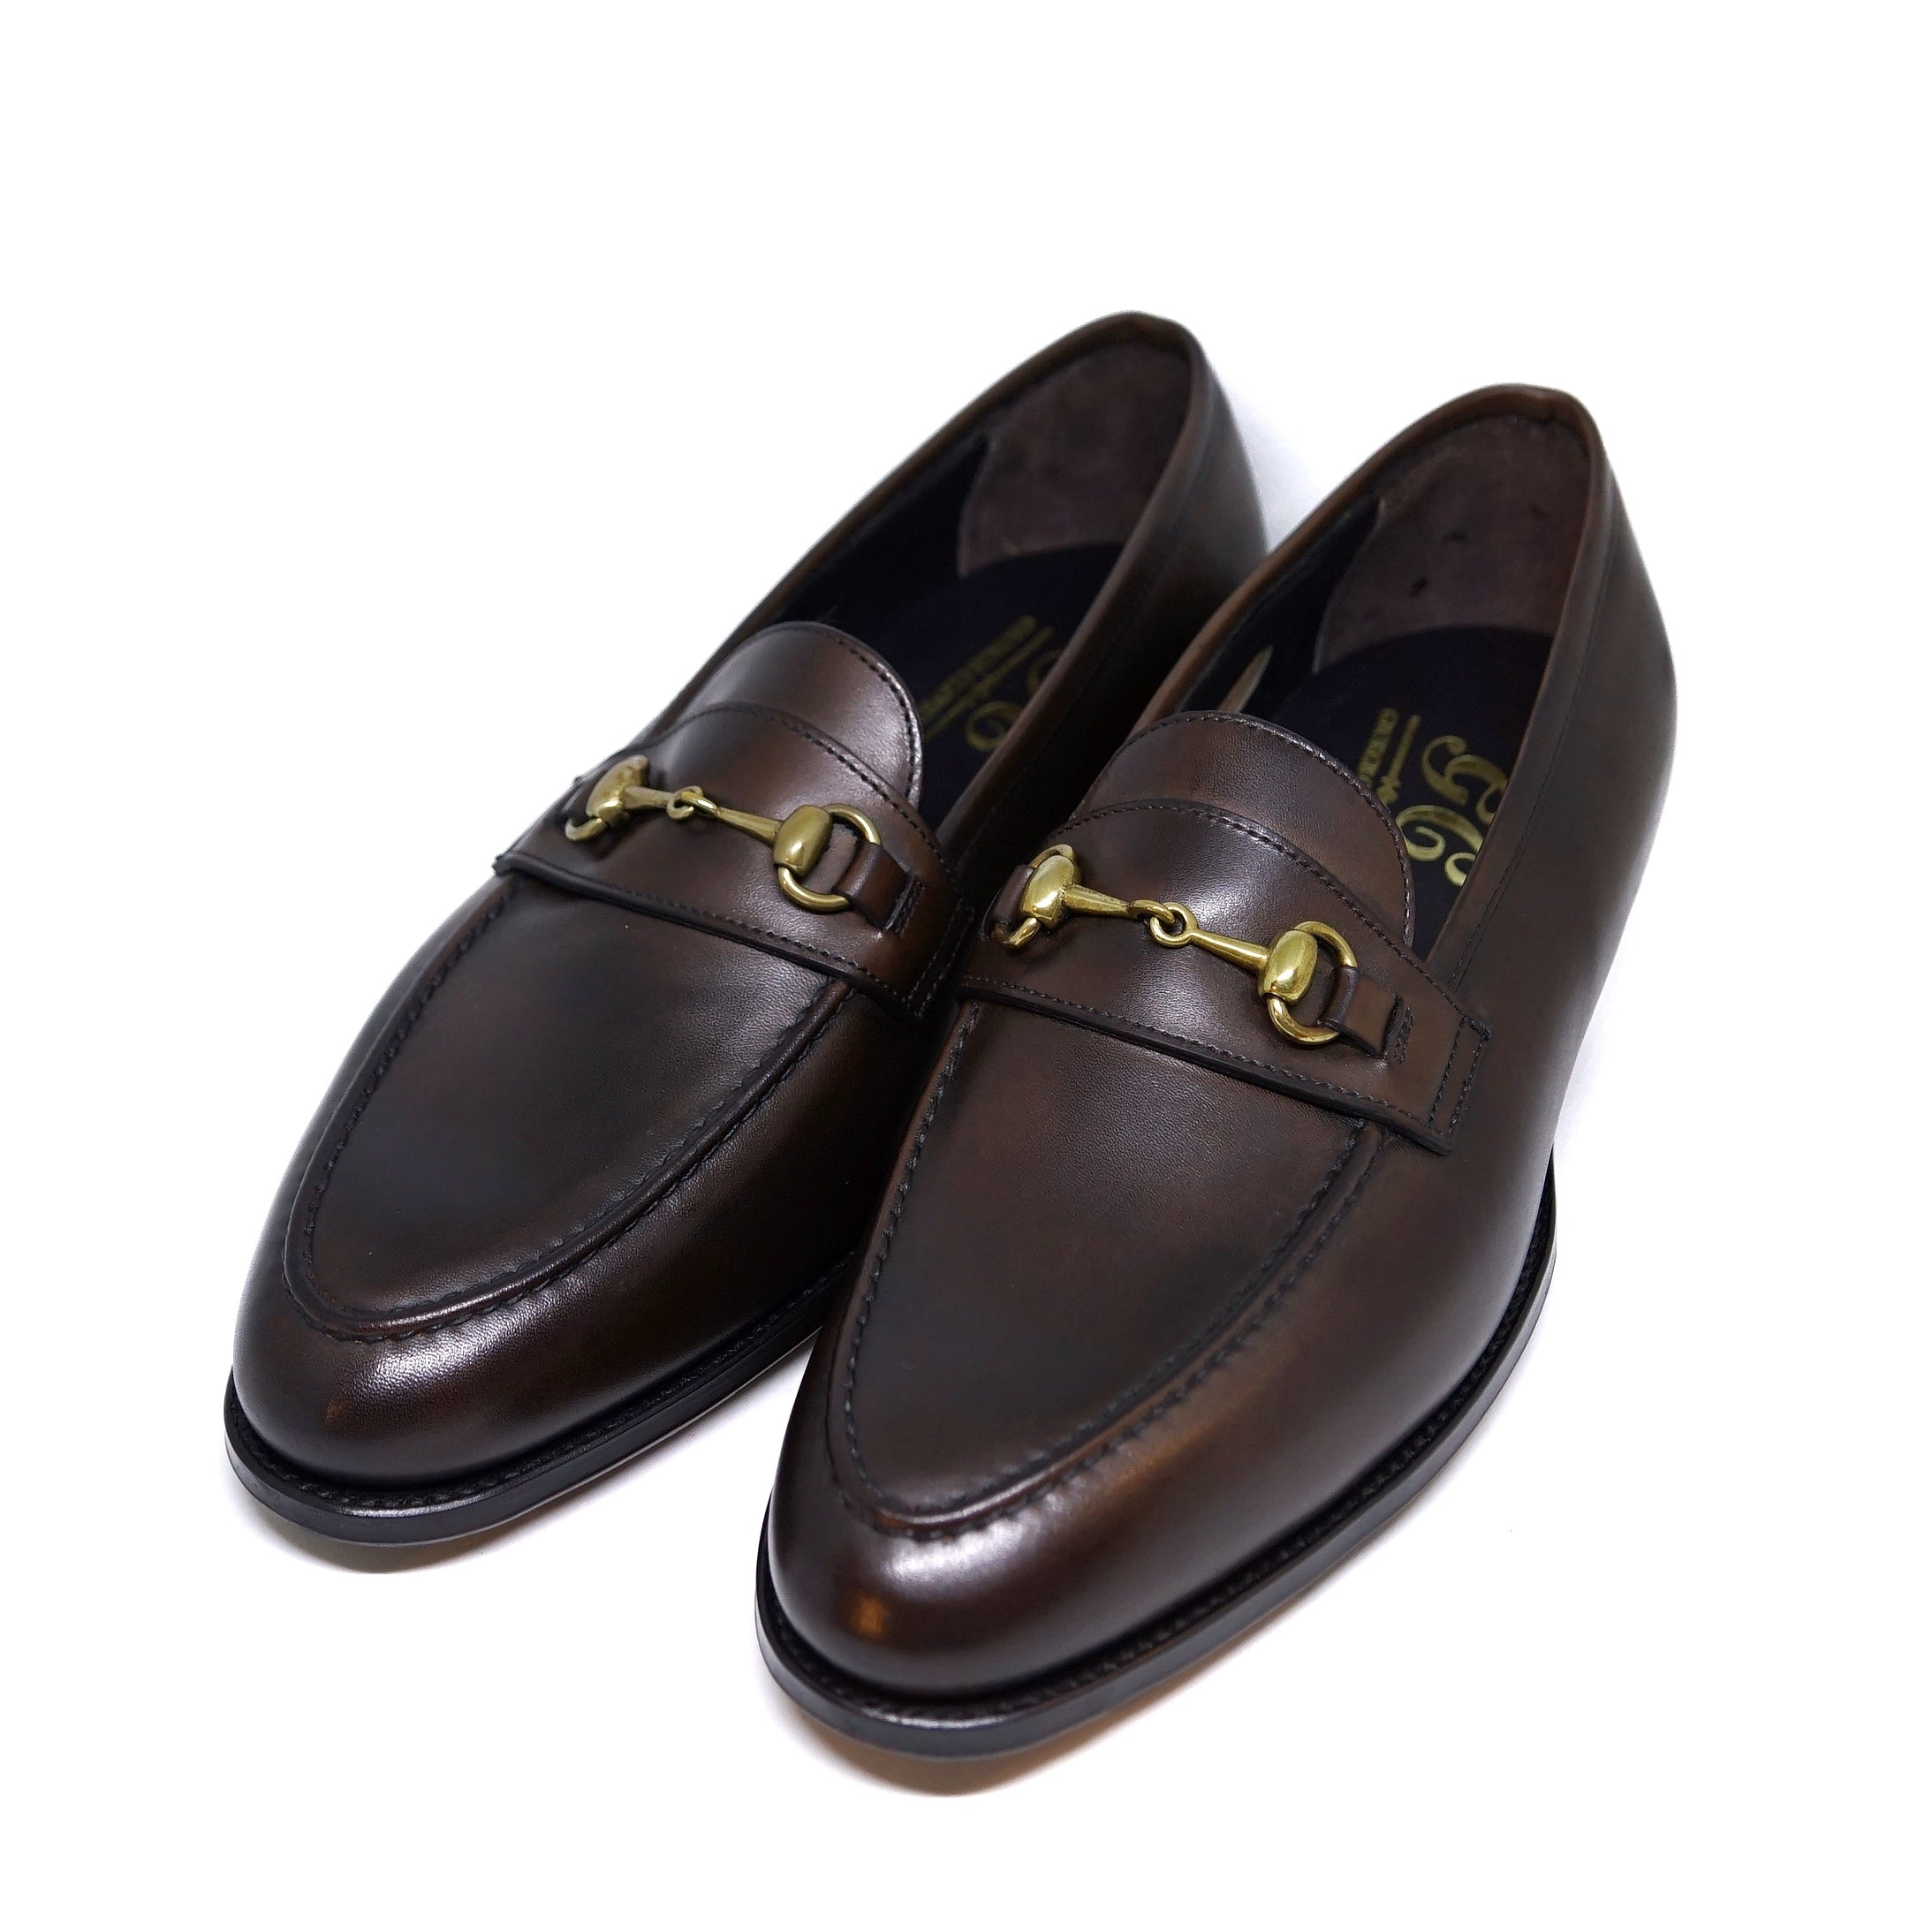 George Cleverley / The Colony Antique Dark Brown Loafers